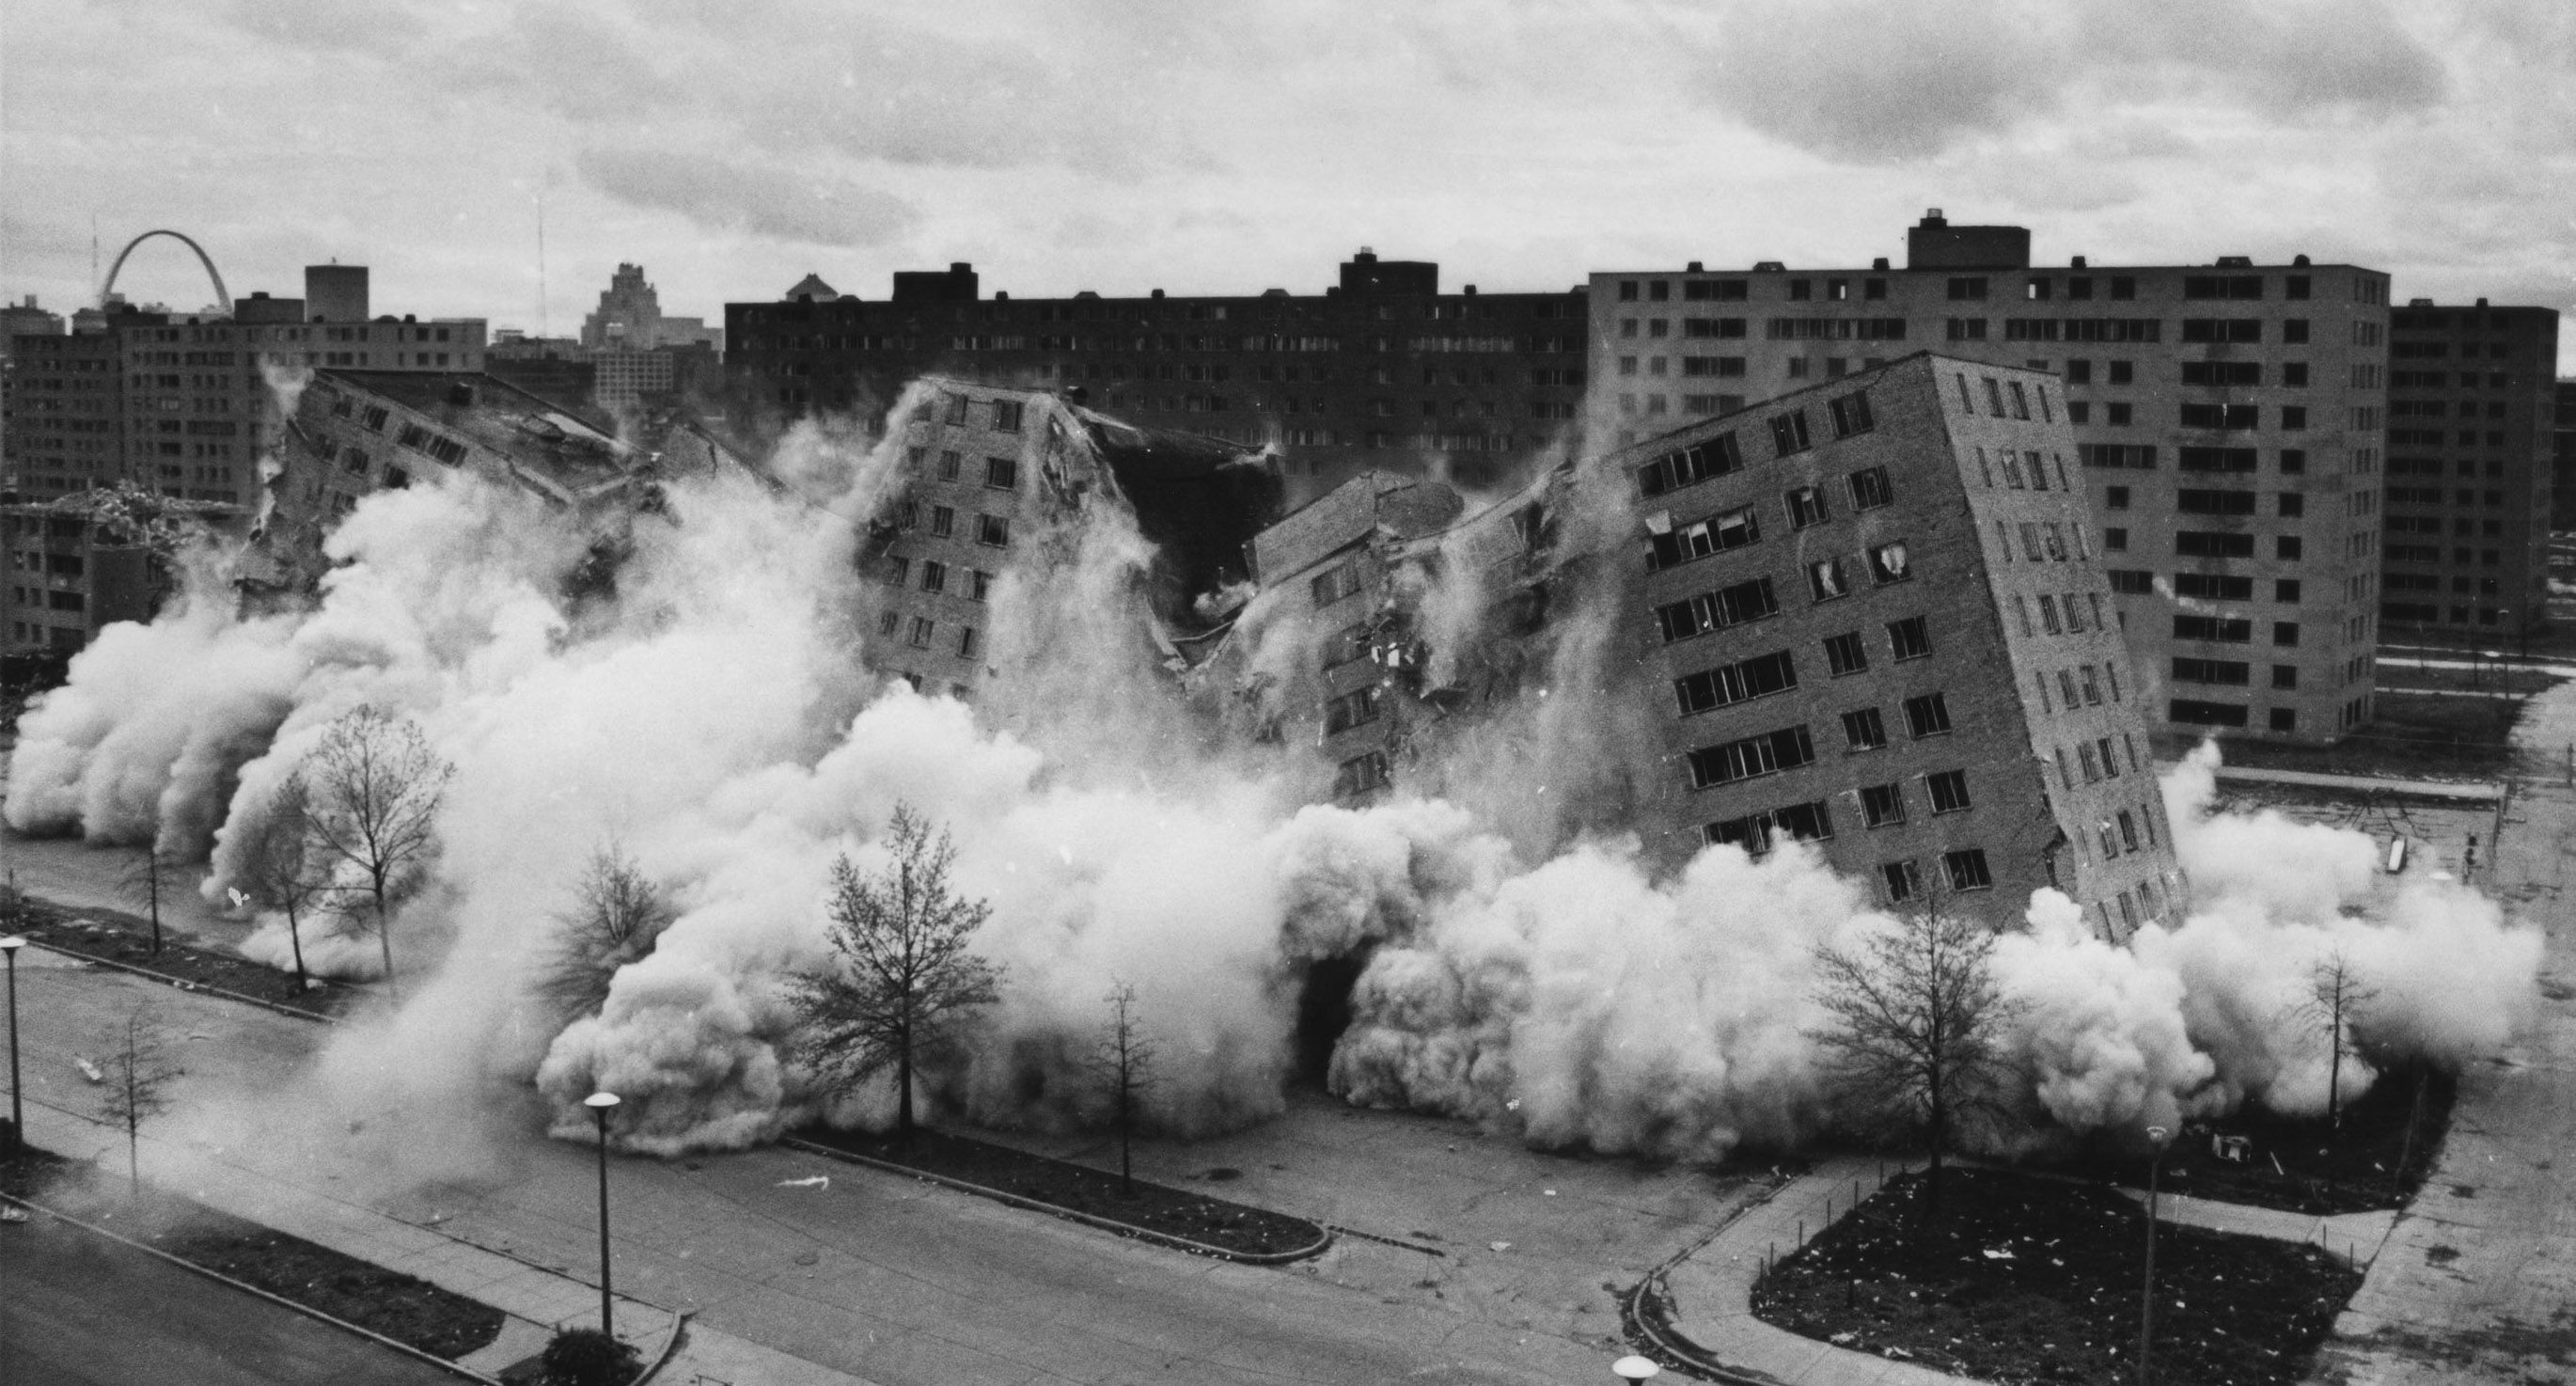 An image from The Pruitt-Igoe Myth